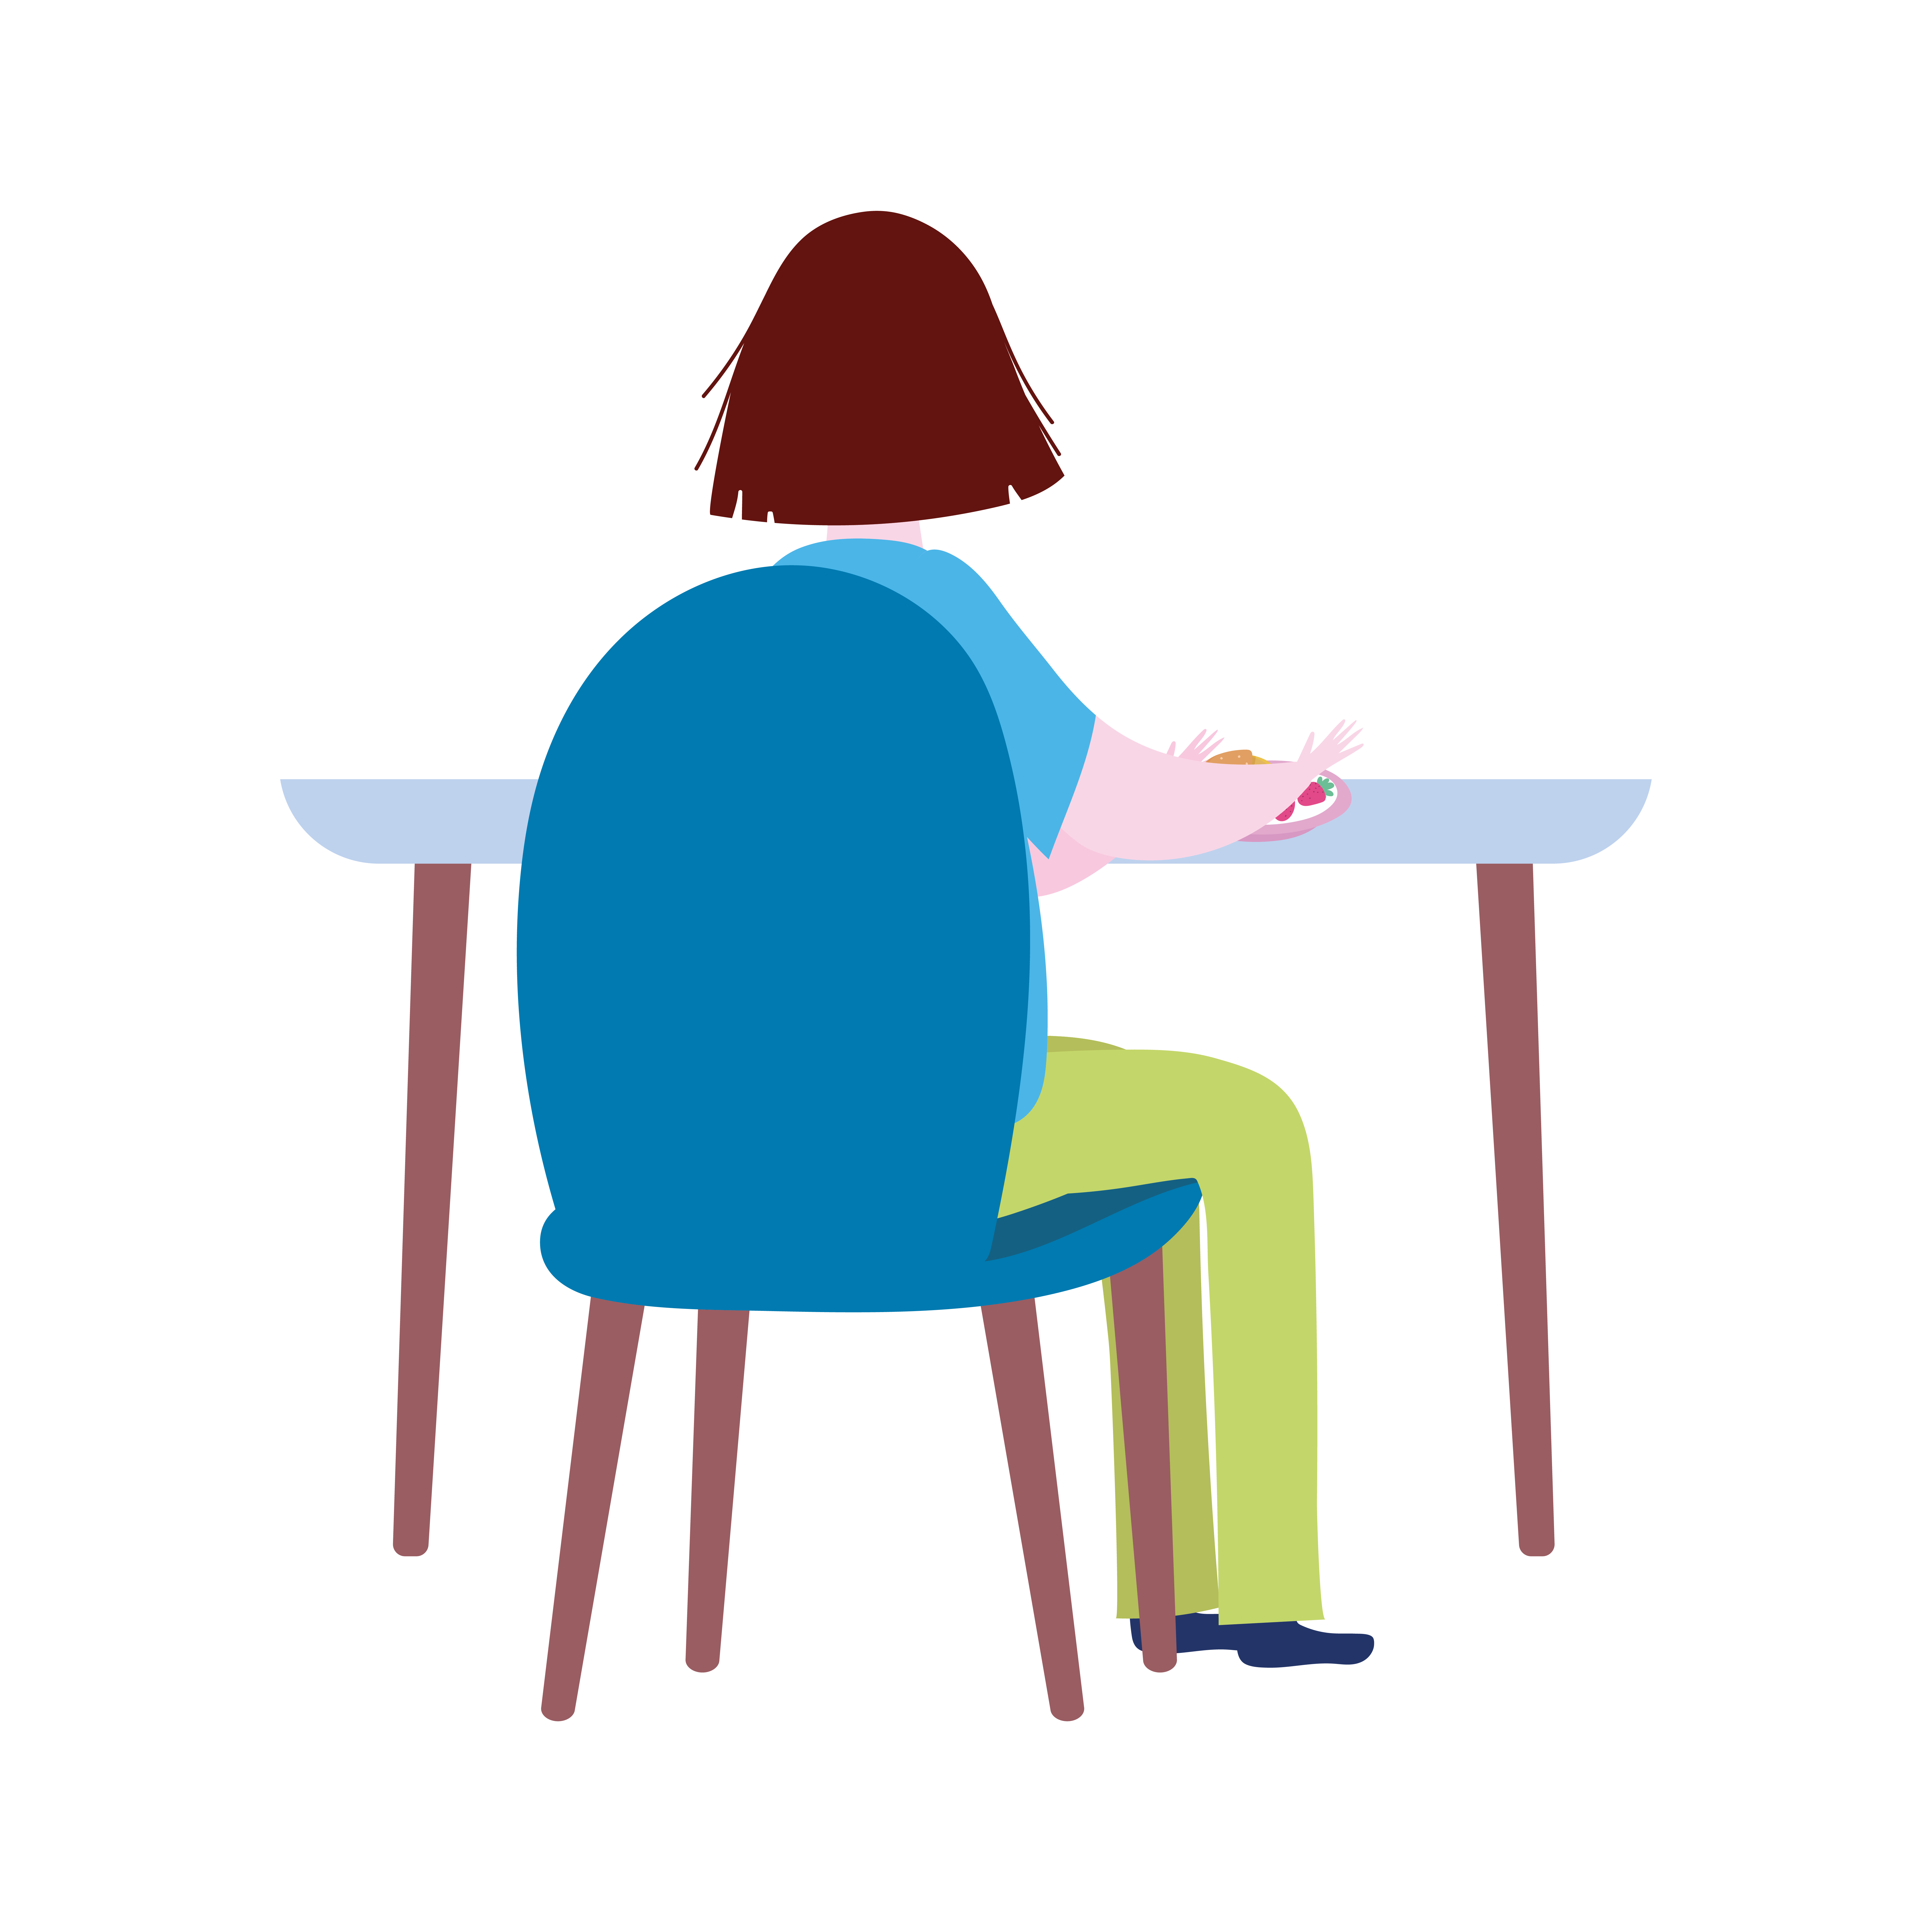 Woman Sitting On The Table Alone Cartoon Isolated Icon 1846832 Vector Art At Vecteezy